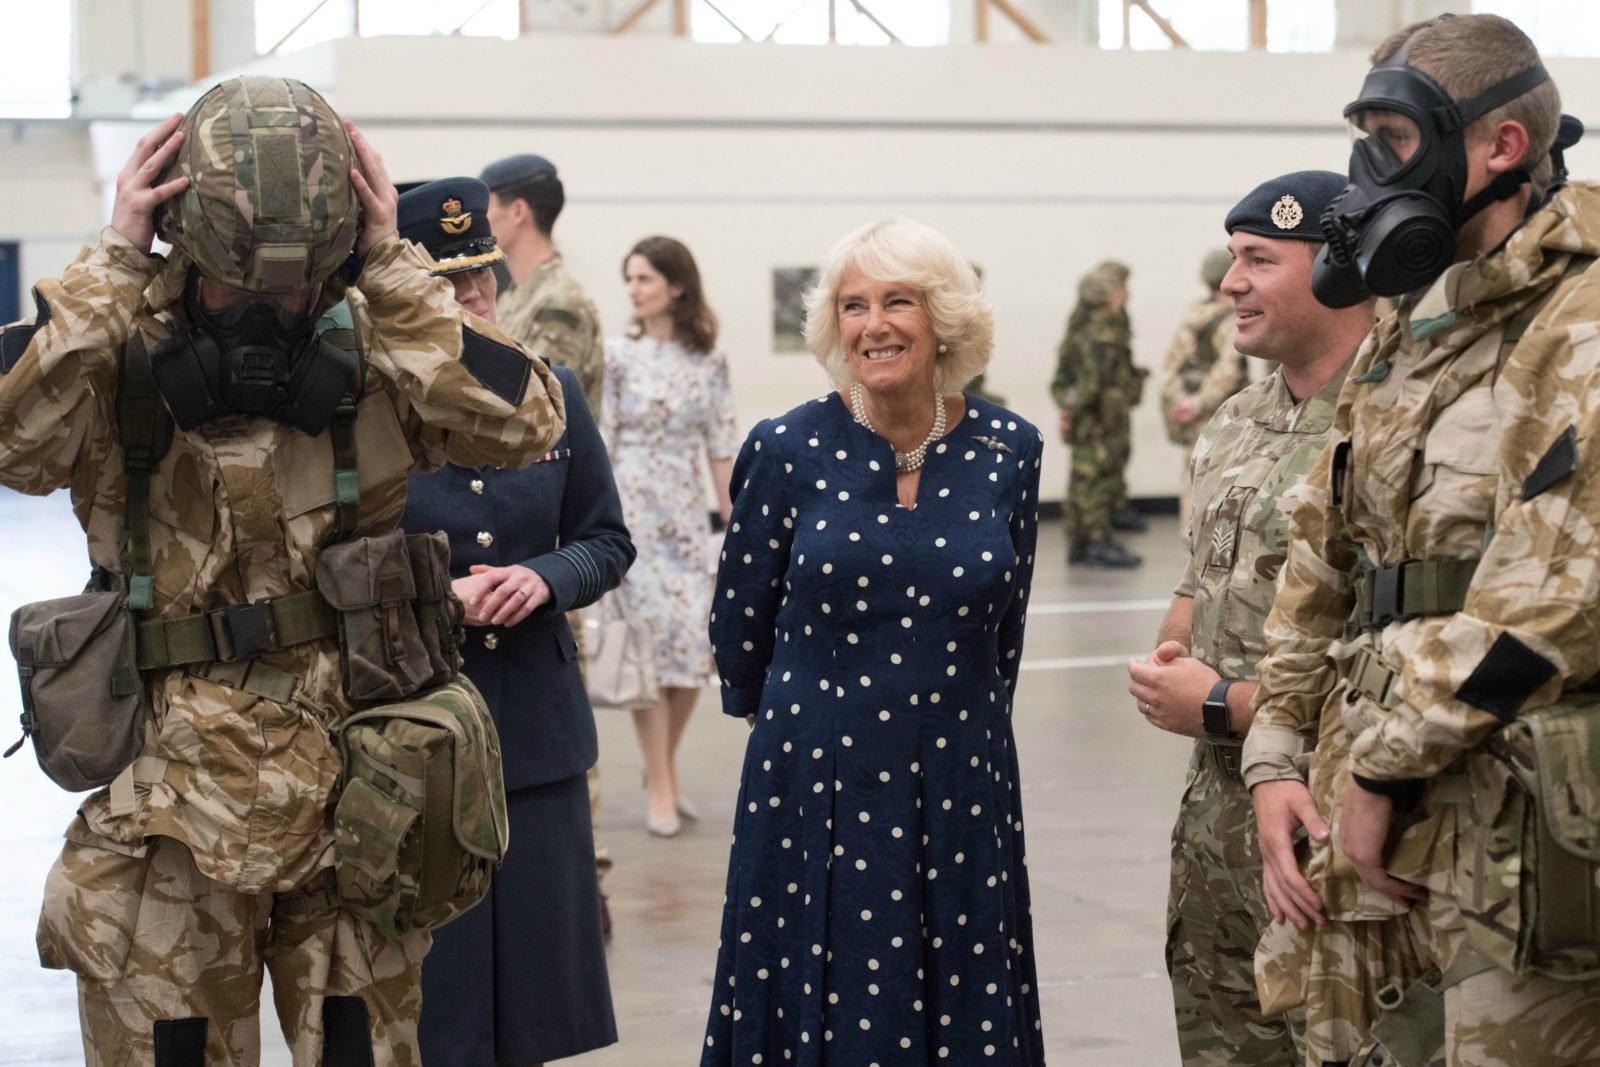 The Duchess of Cornwall flashed a beaming smile on the outing. Source: Getty.